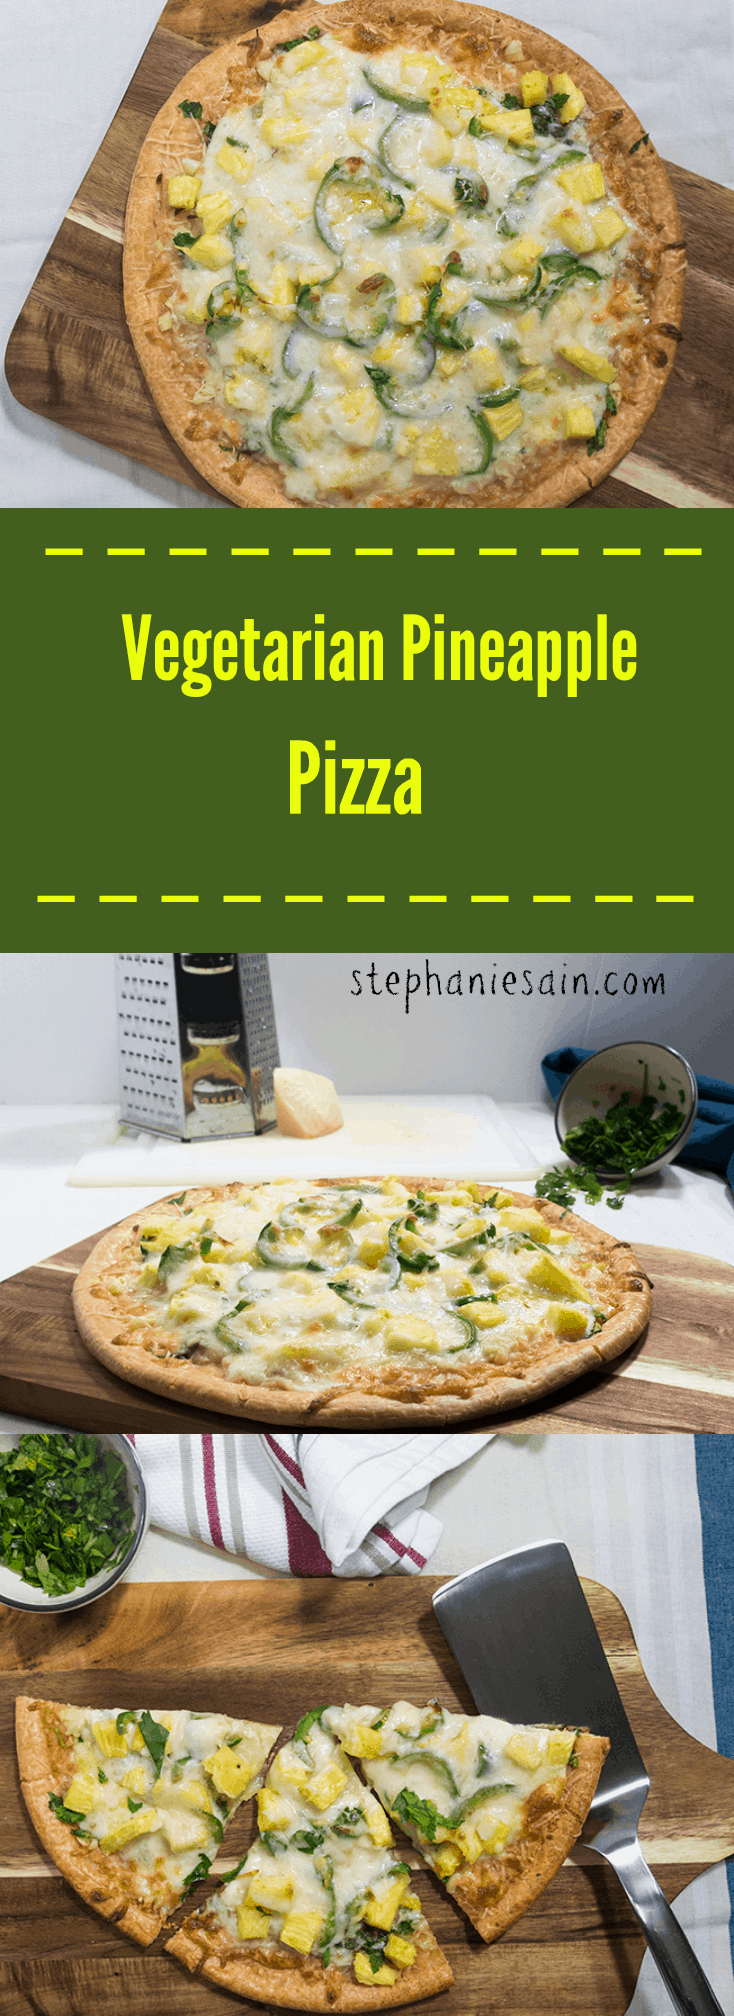 Vegetarian Pineapple Pizza is loaded with fresh pineapple and jalapenos that make for the perfect blend of sweet and savory. Gluten Free.